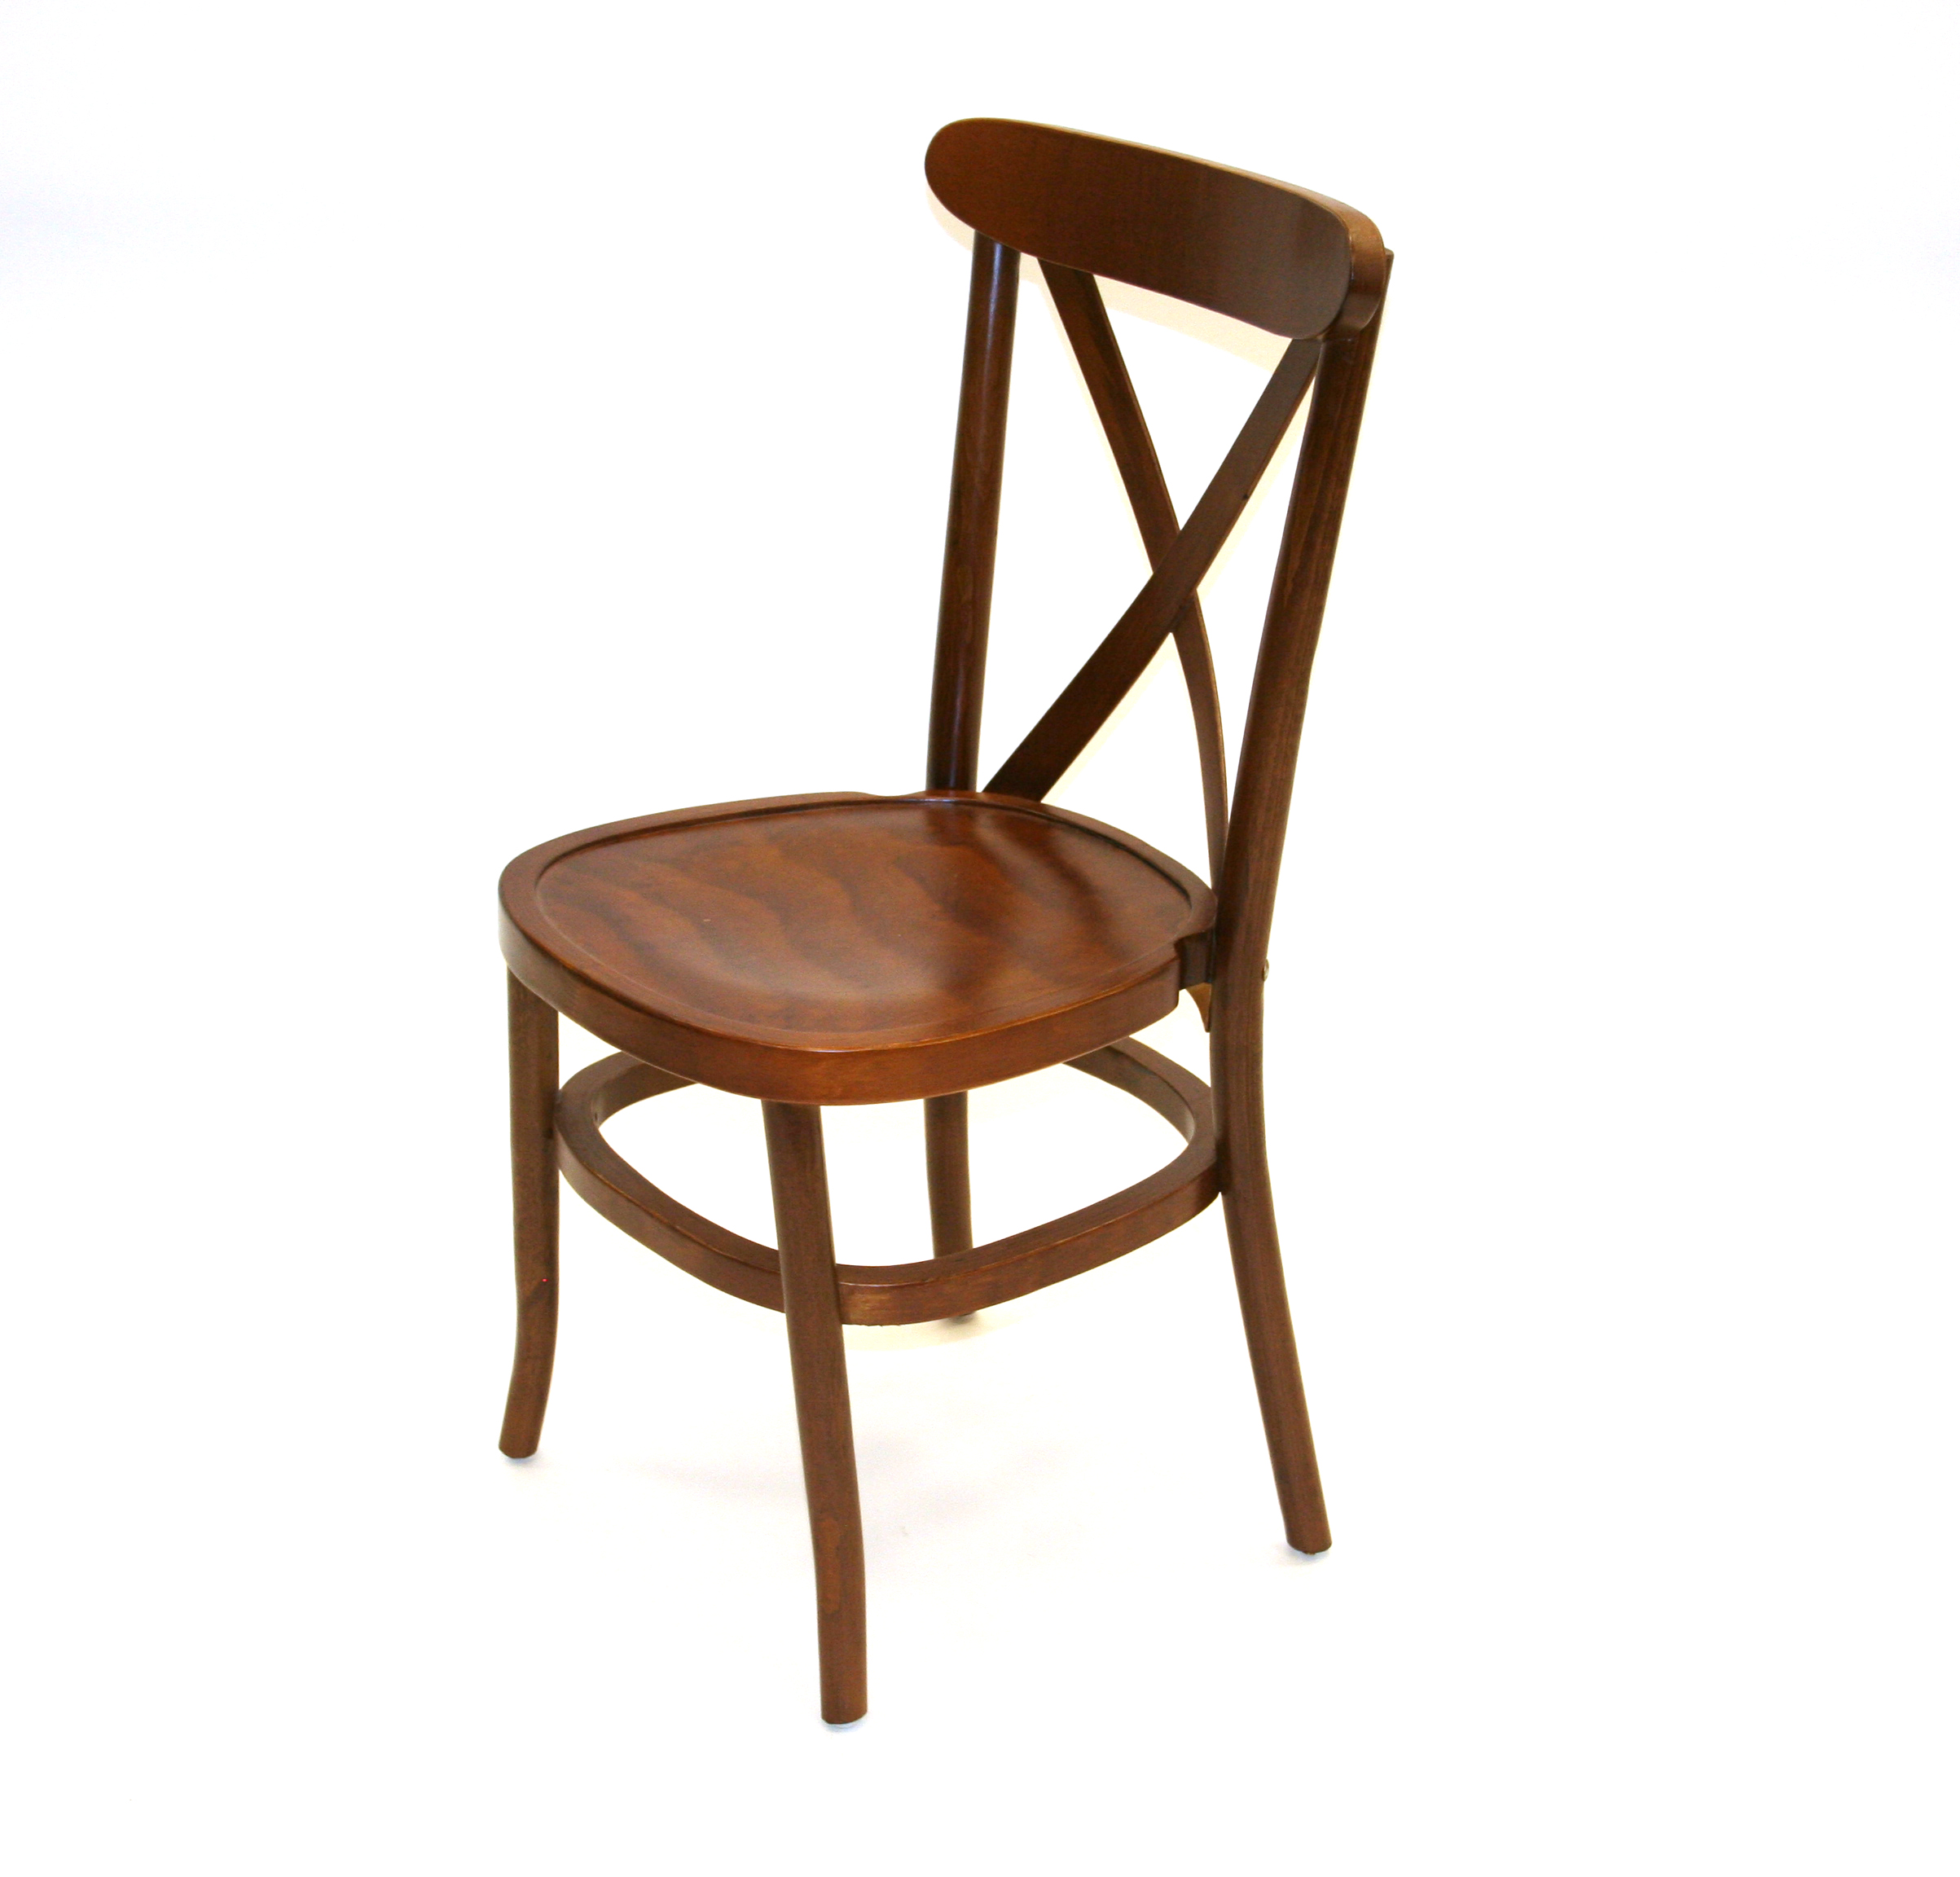 wooden crossback chairs for hire weddings events be